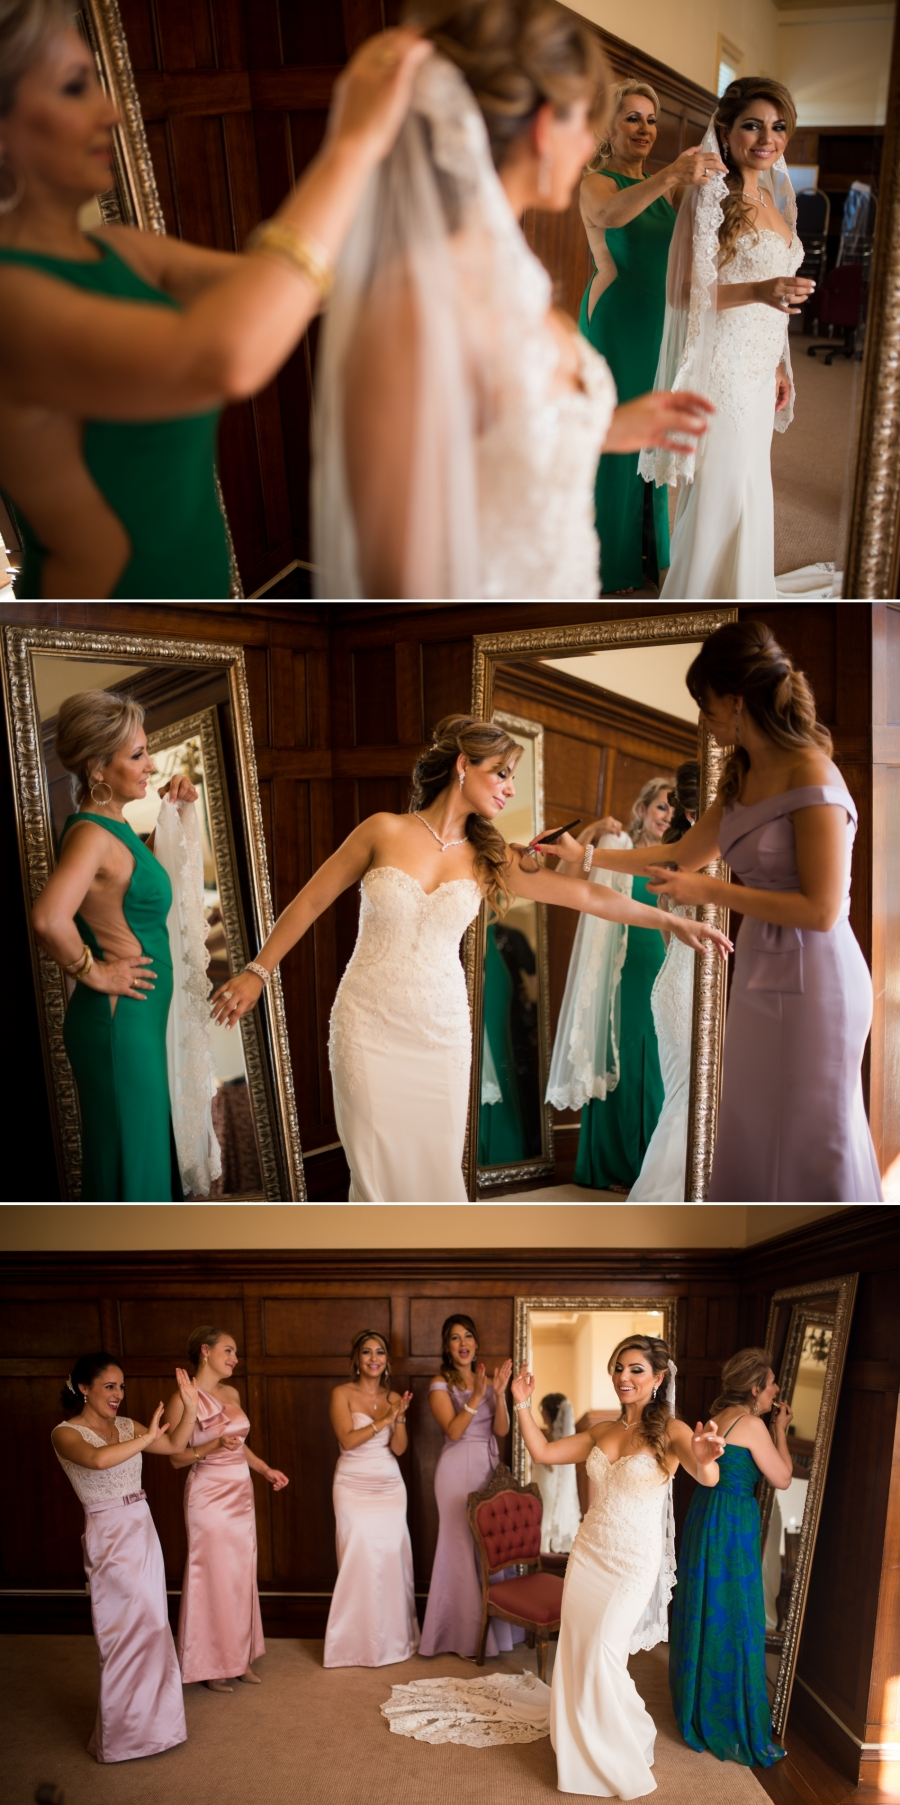 persian-wedding-at-kohl-mansion-in-burlingame-by-brian-macstay-photography-24